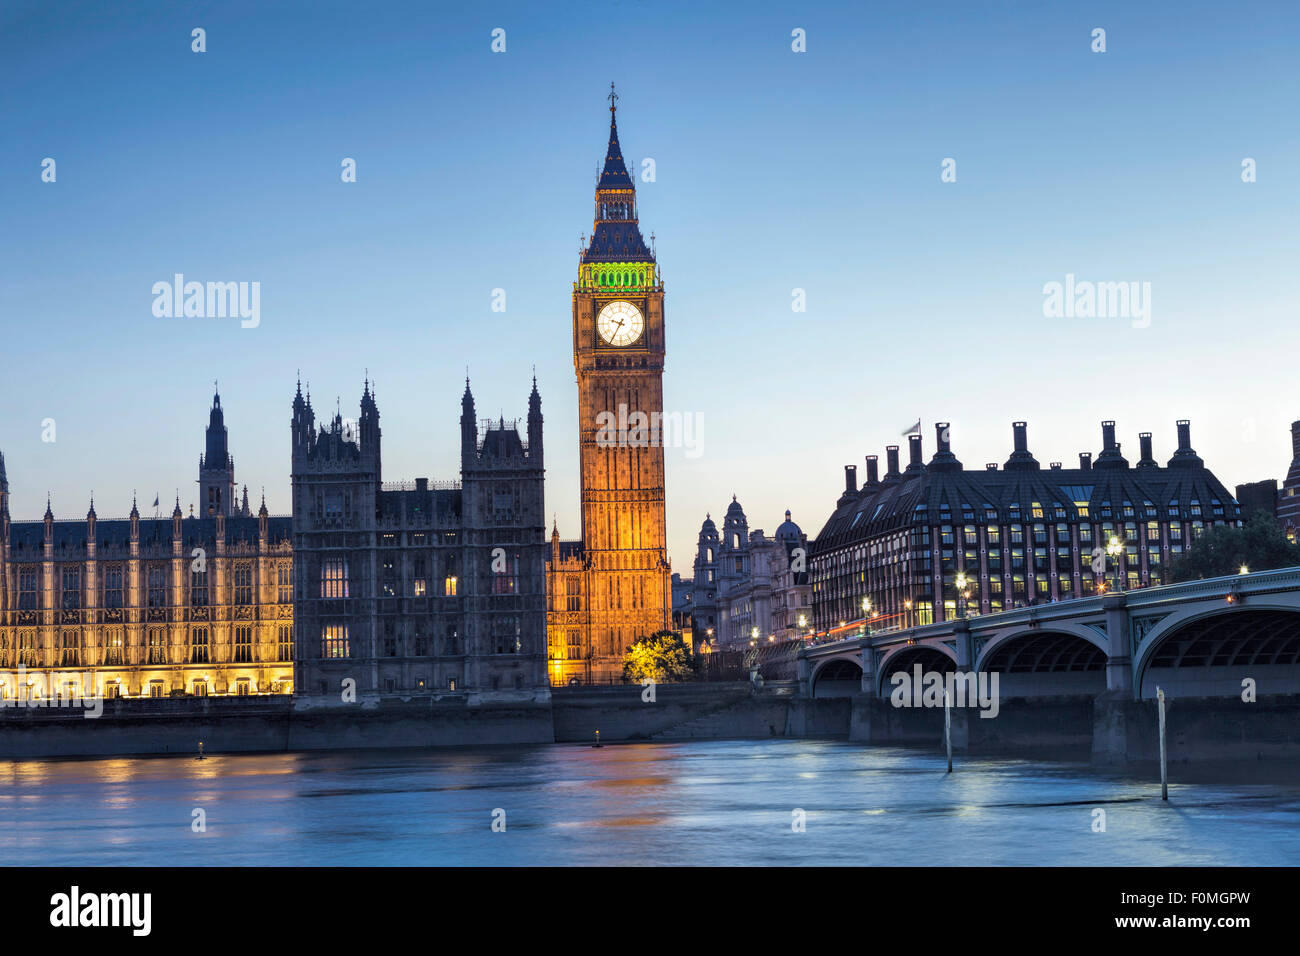 London, Houses of Parliament (Palace of Westminster), Thames and Westminster Bridge - Stock Image